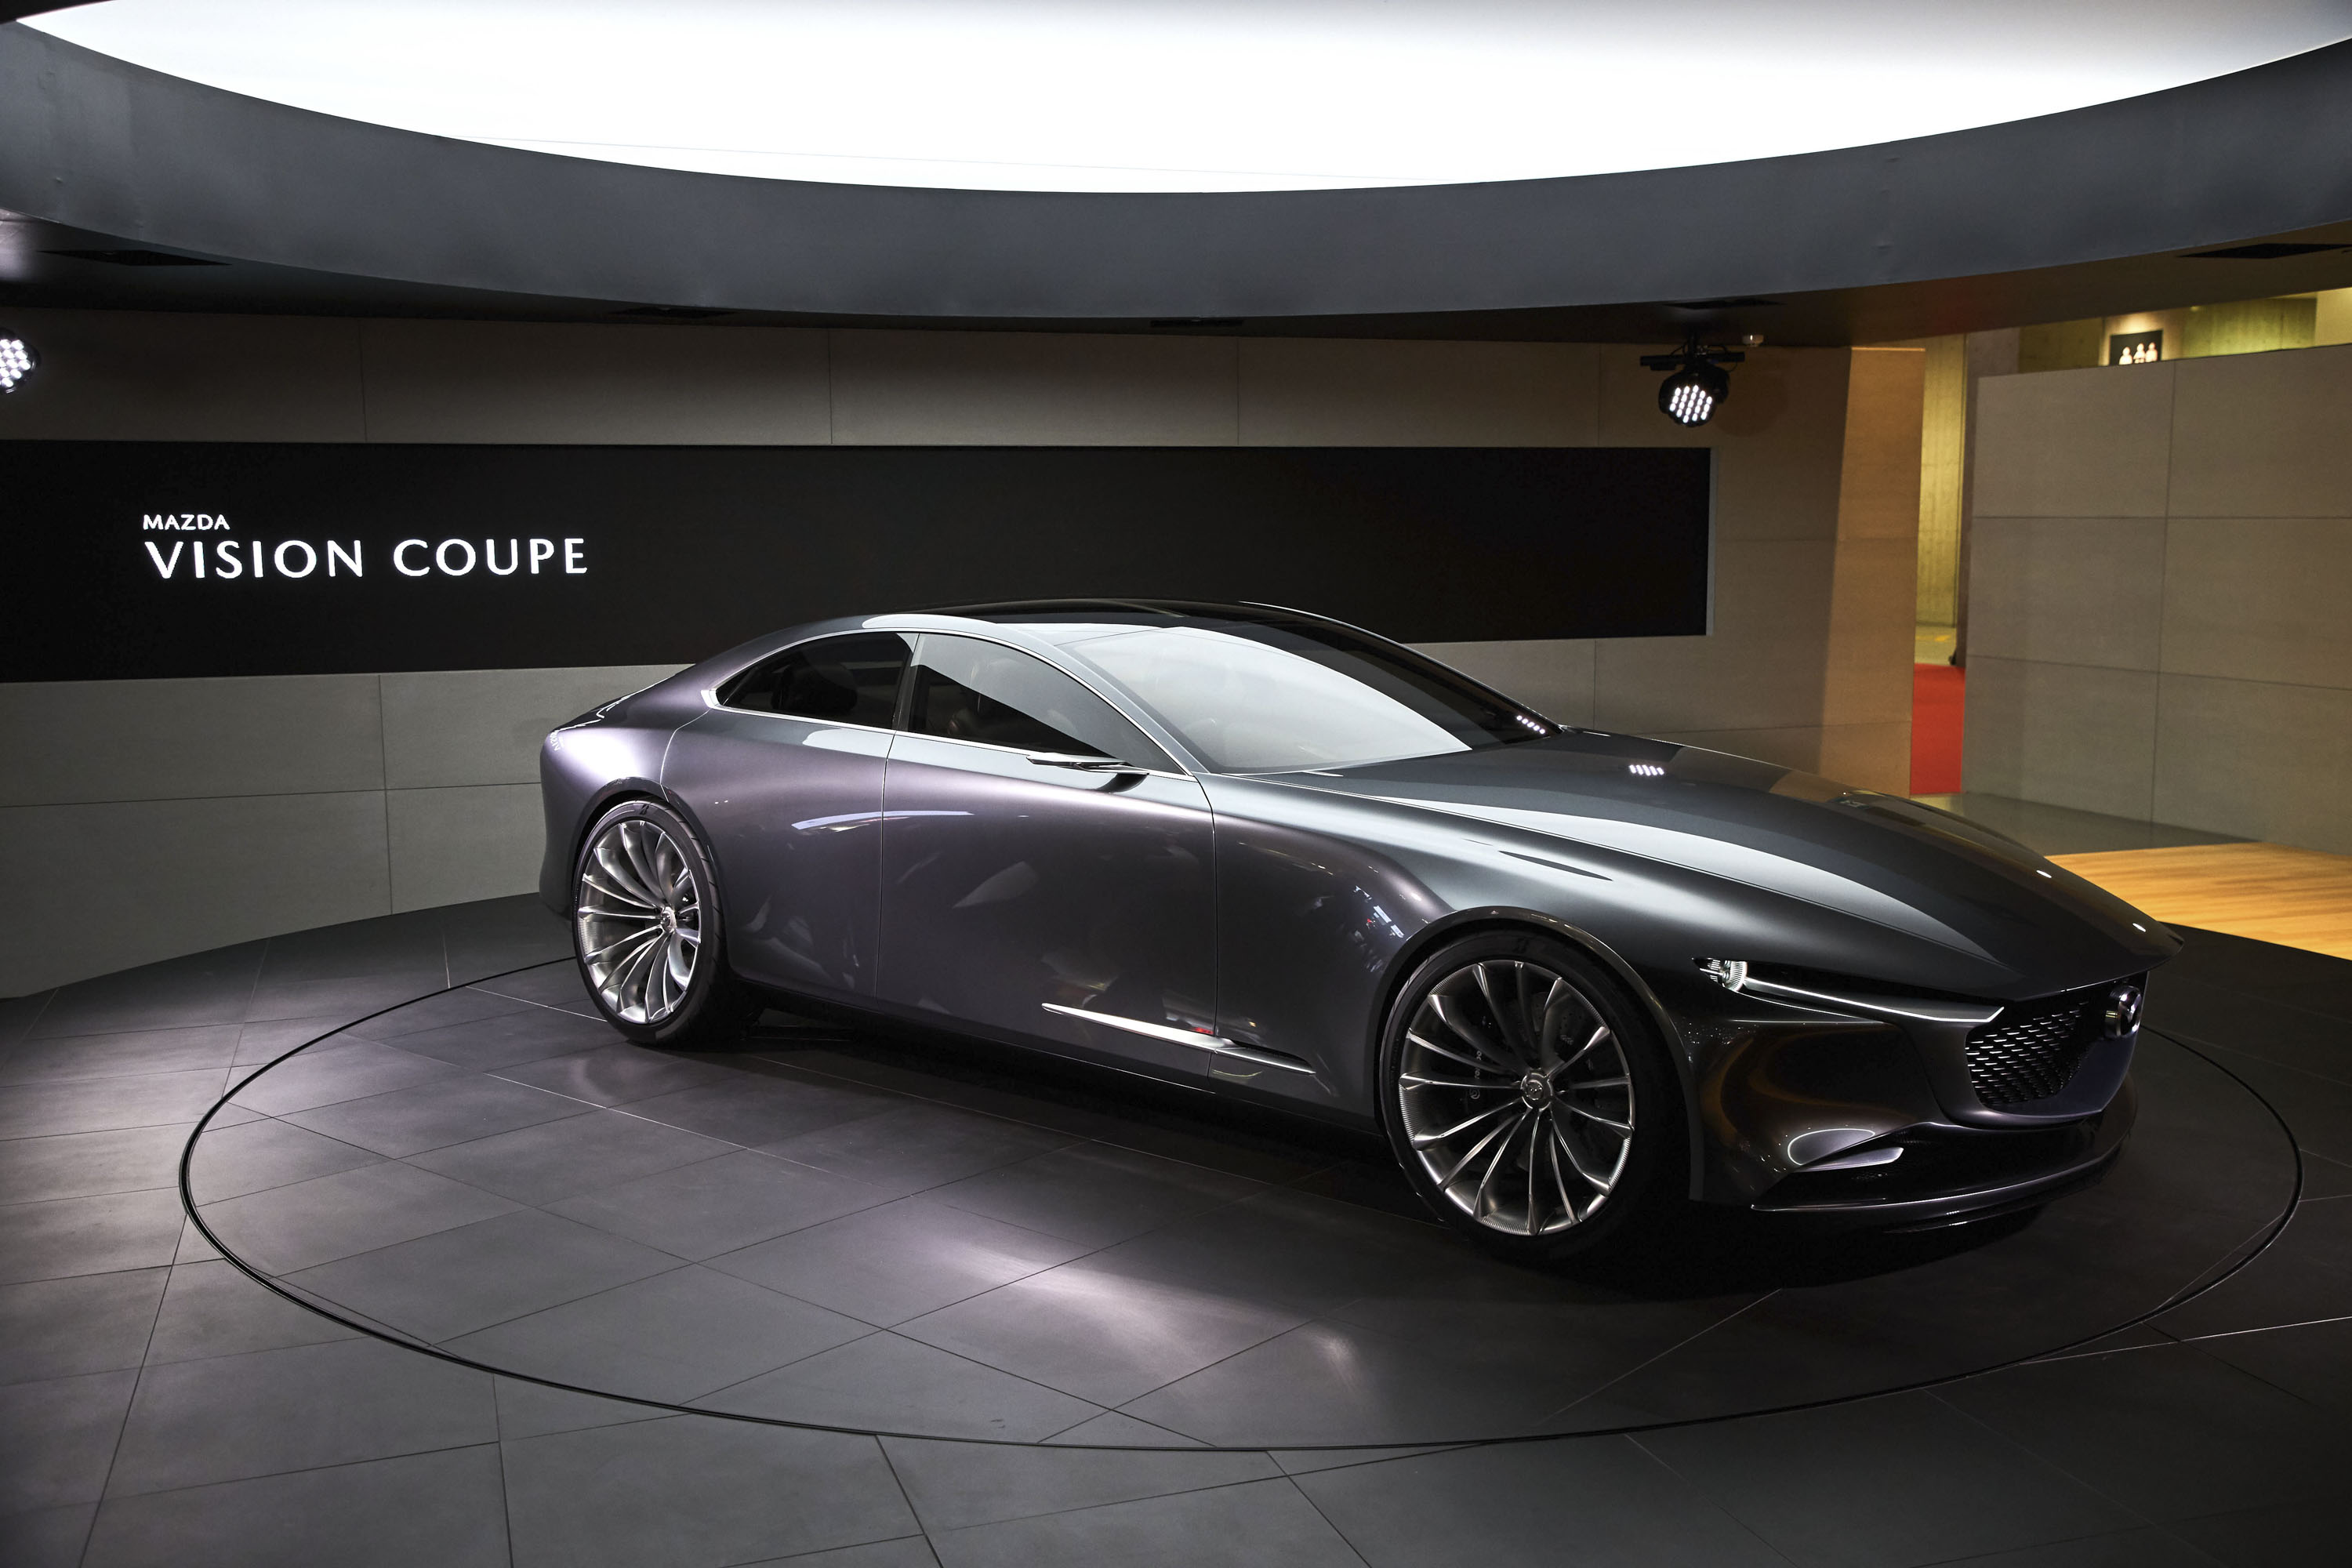 https://pictures.topspeed.com/IMG/jpg/201710/2017-mazda-vision-coupe-c-10.jpg